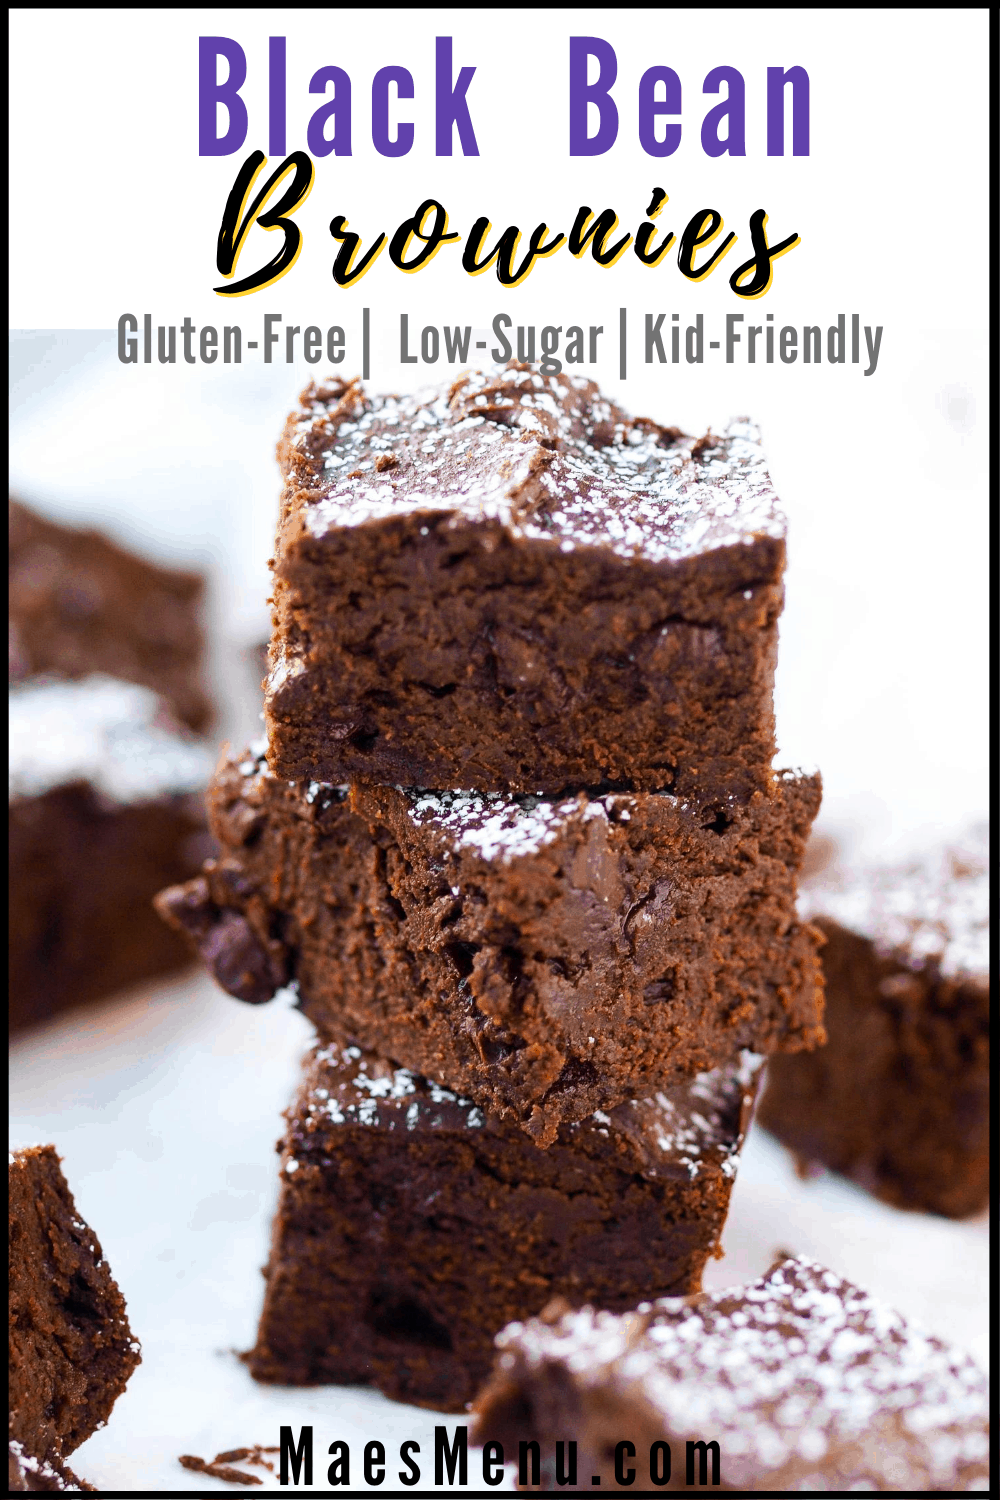 Pinterest pin for black bean brownies. On the picture is a stack of black bean brownies